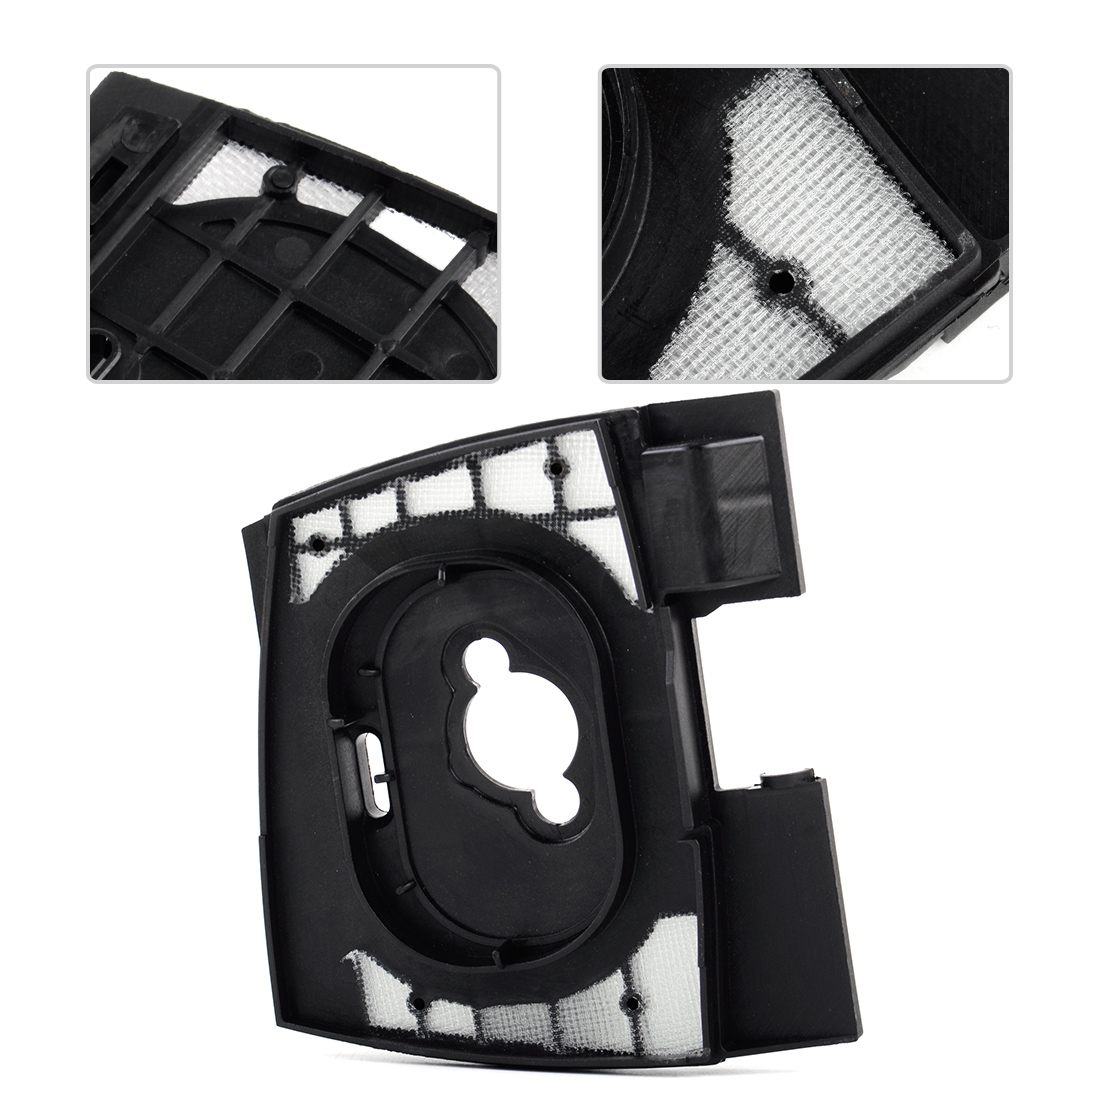 LETAOSK  Air Filter Base Plate Fit For Stihl 066 065 MS660 MS650 Chainsaw 1122 120 3402